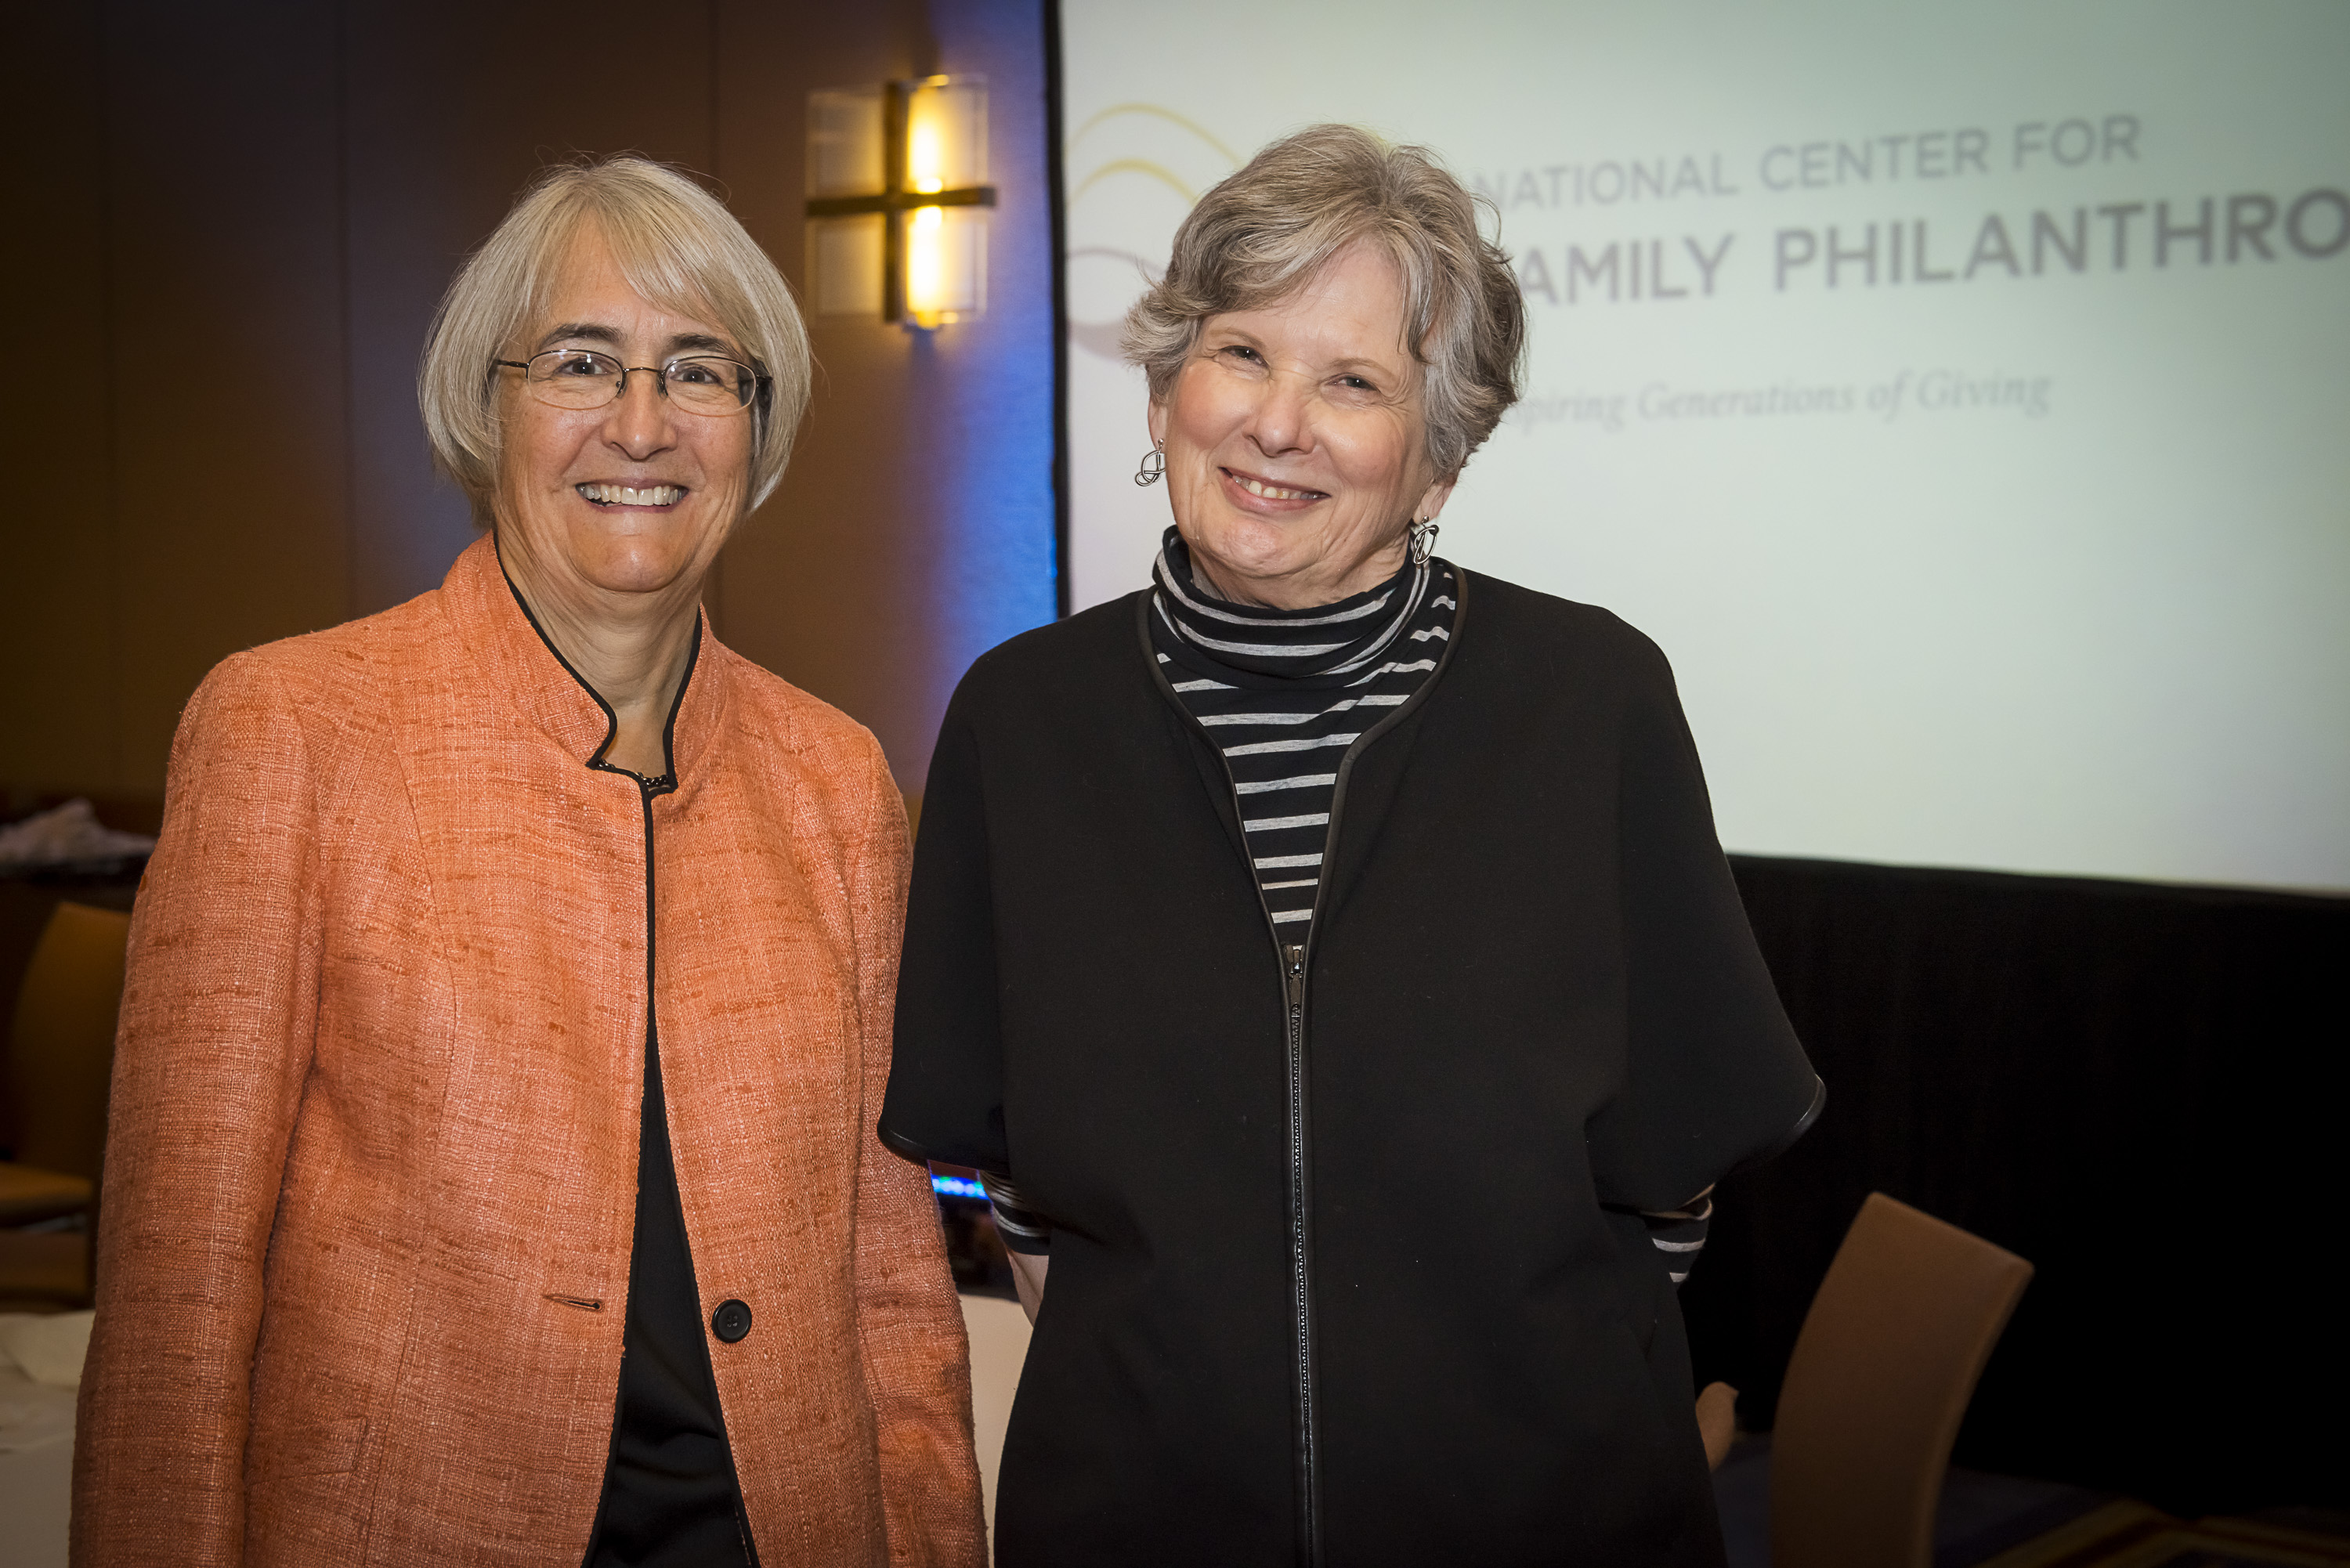 Susan Packard Orr (L) and Alice Buhl (R)